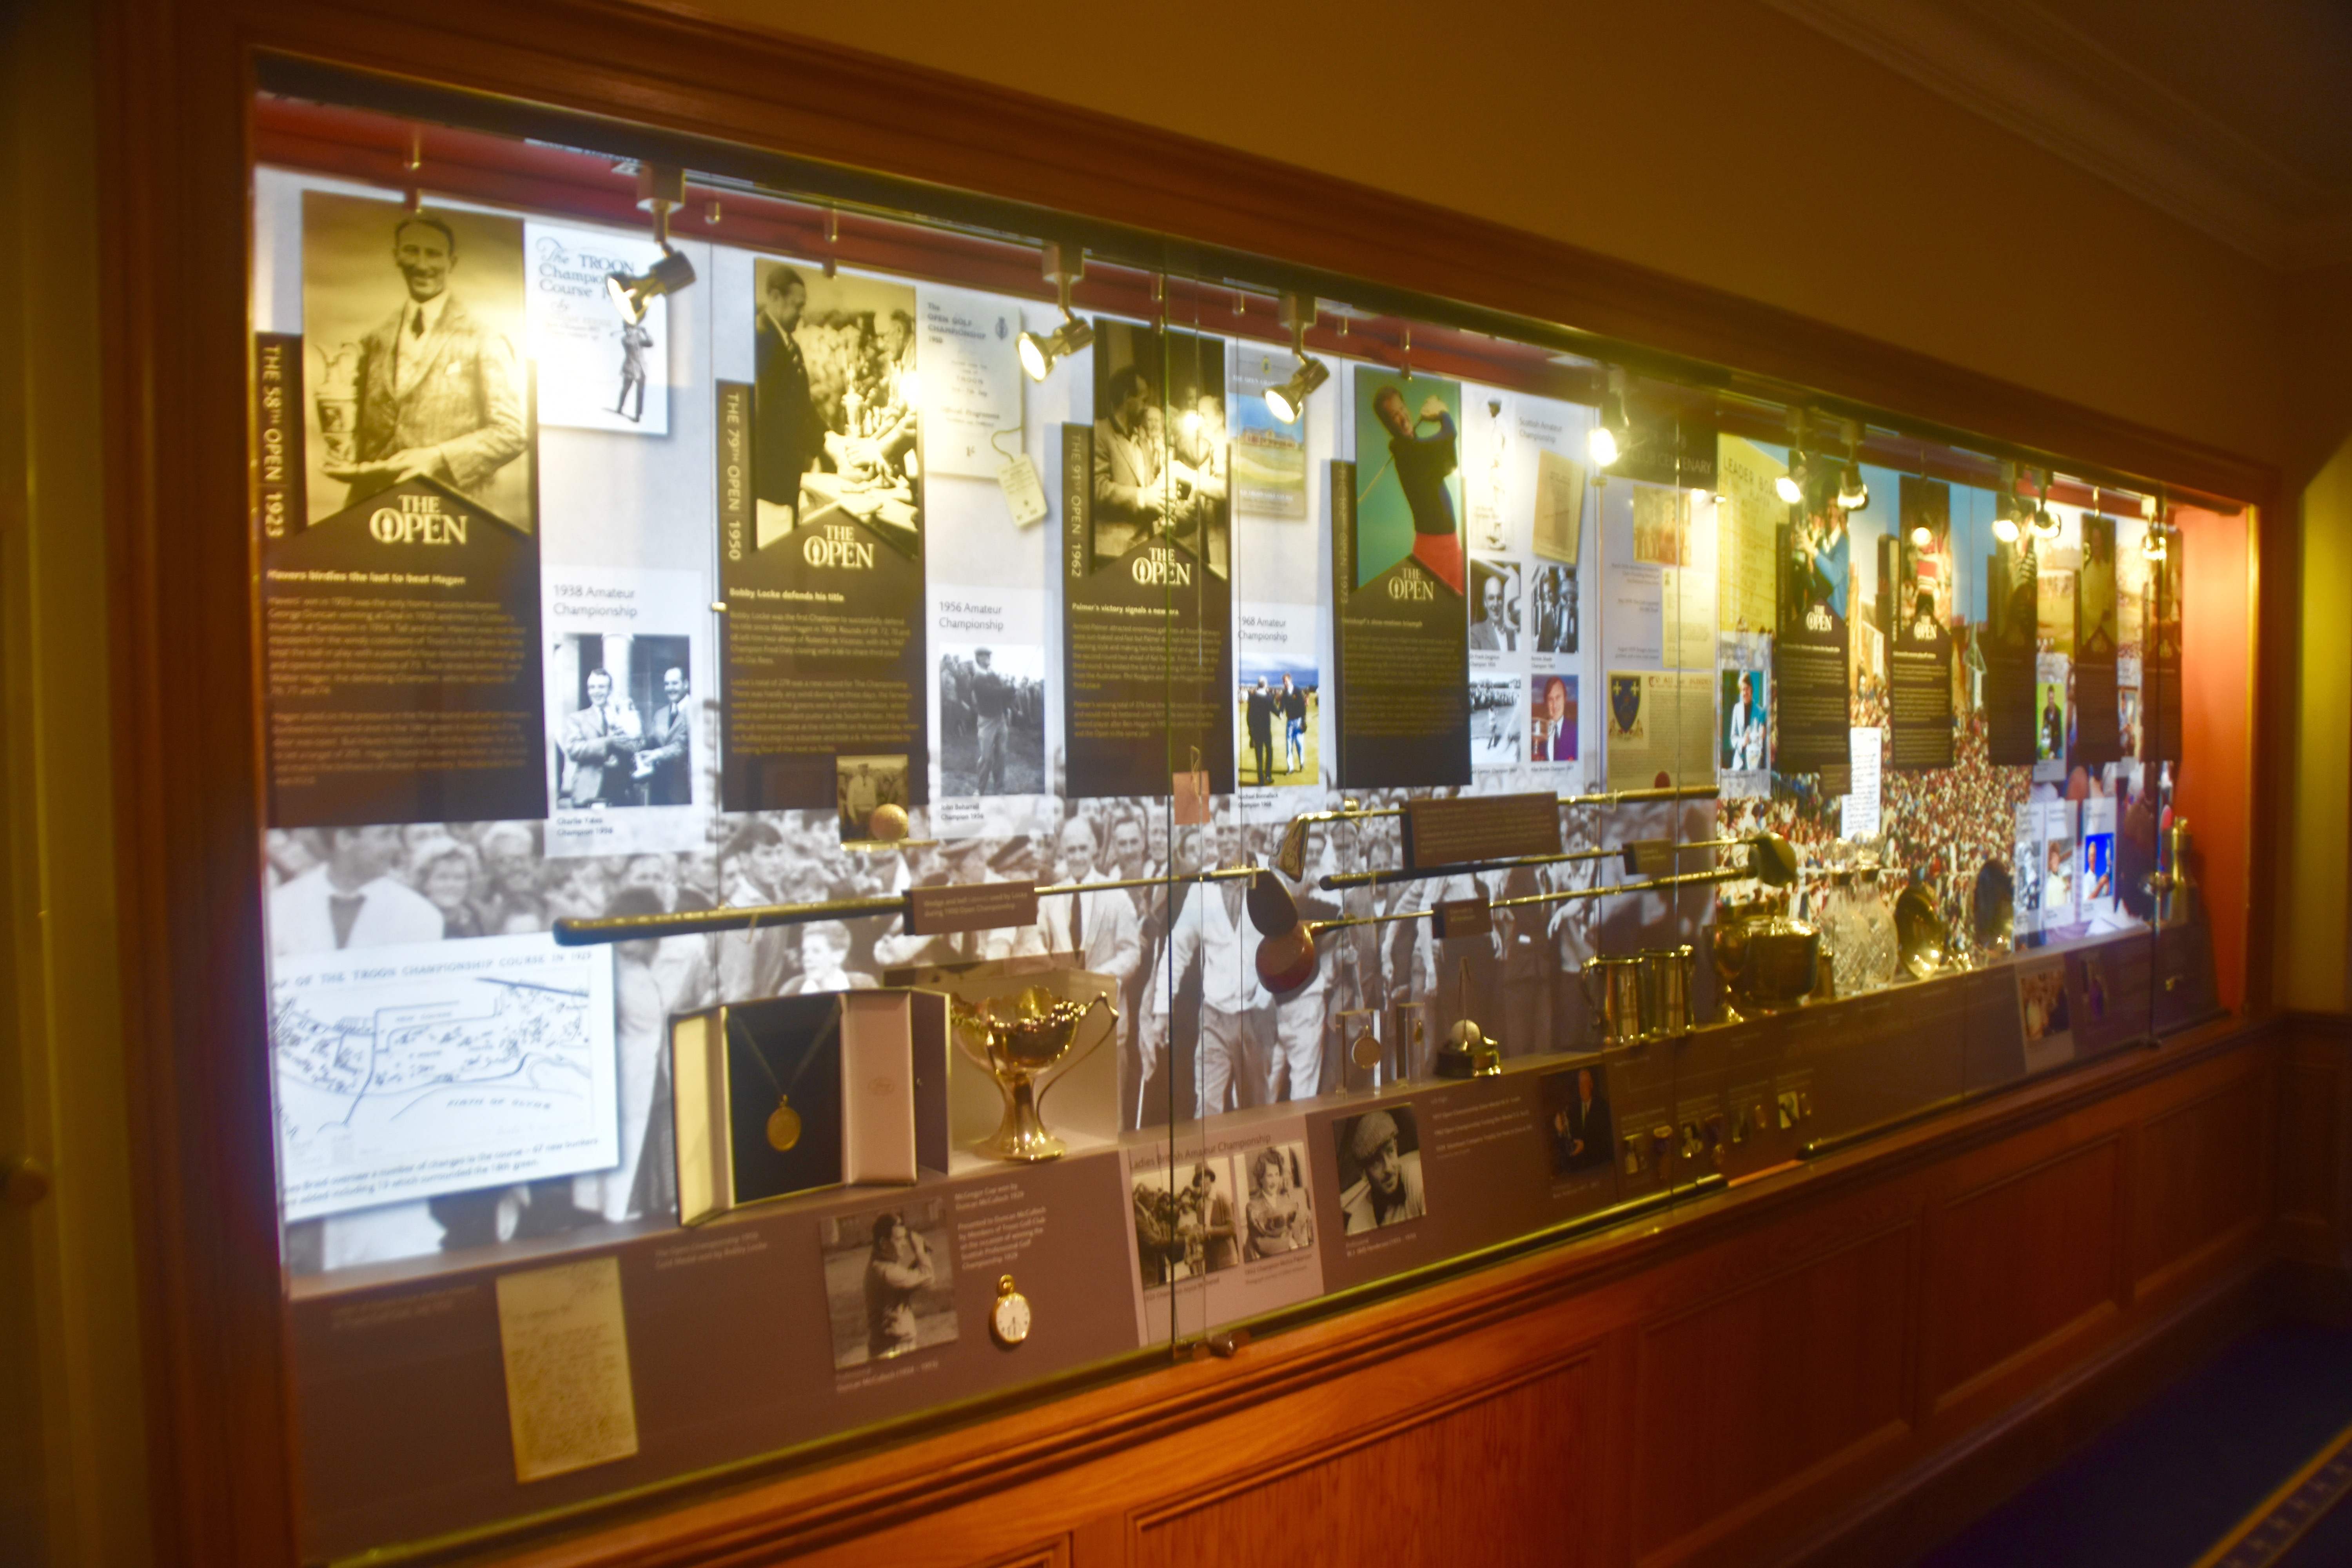 Golf History on Display at Troon